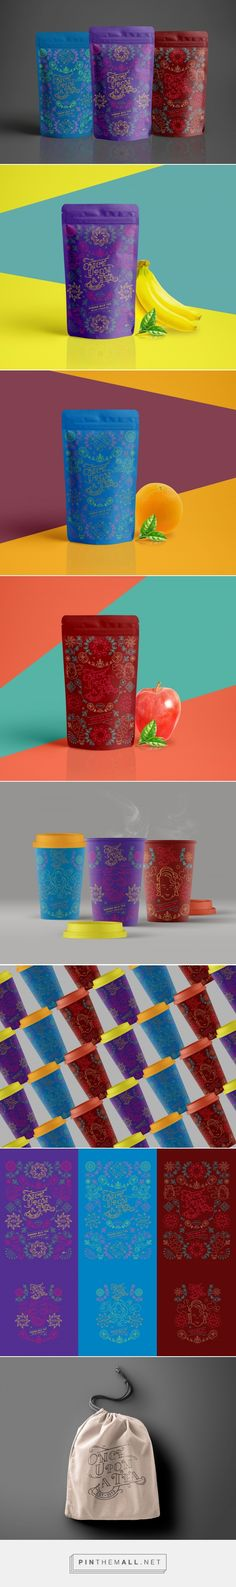 Once Upon A Tea - Instant Aroma Tea - Packaging of the World - Creative Package Design Gallery - http://www.packagingoftheworld.com/2017/02/once-upon-tea-instant-aroma-tea.html